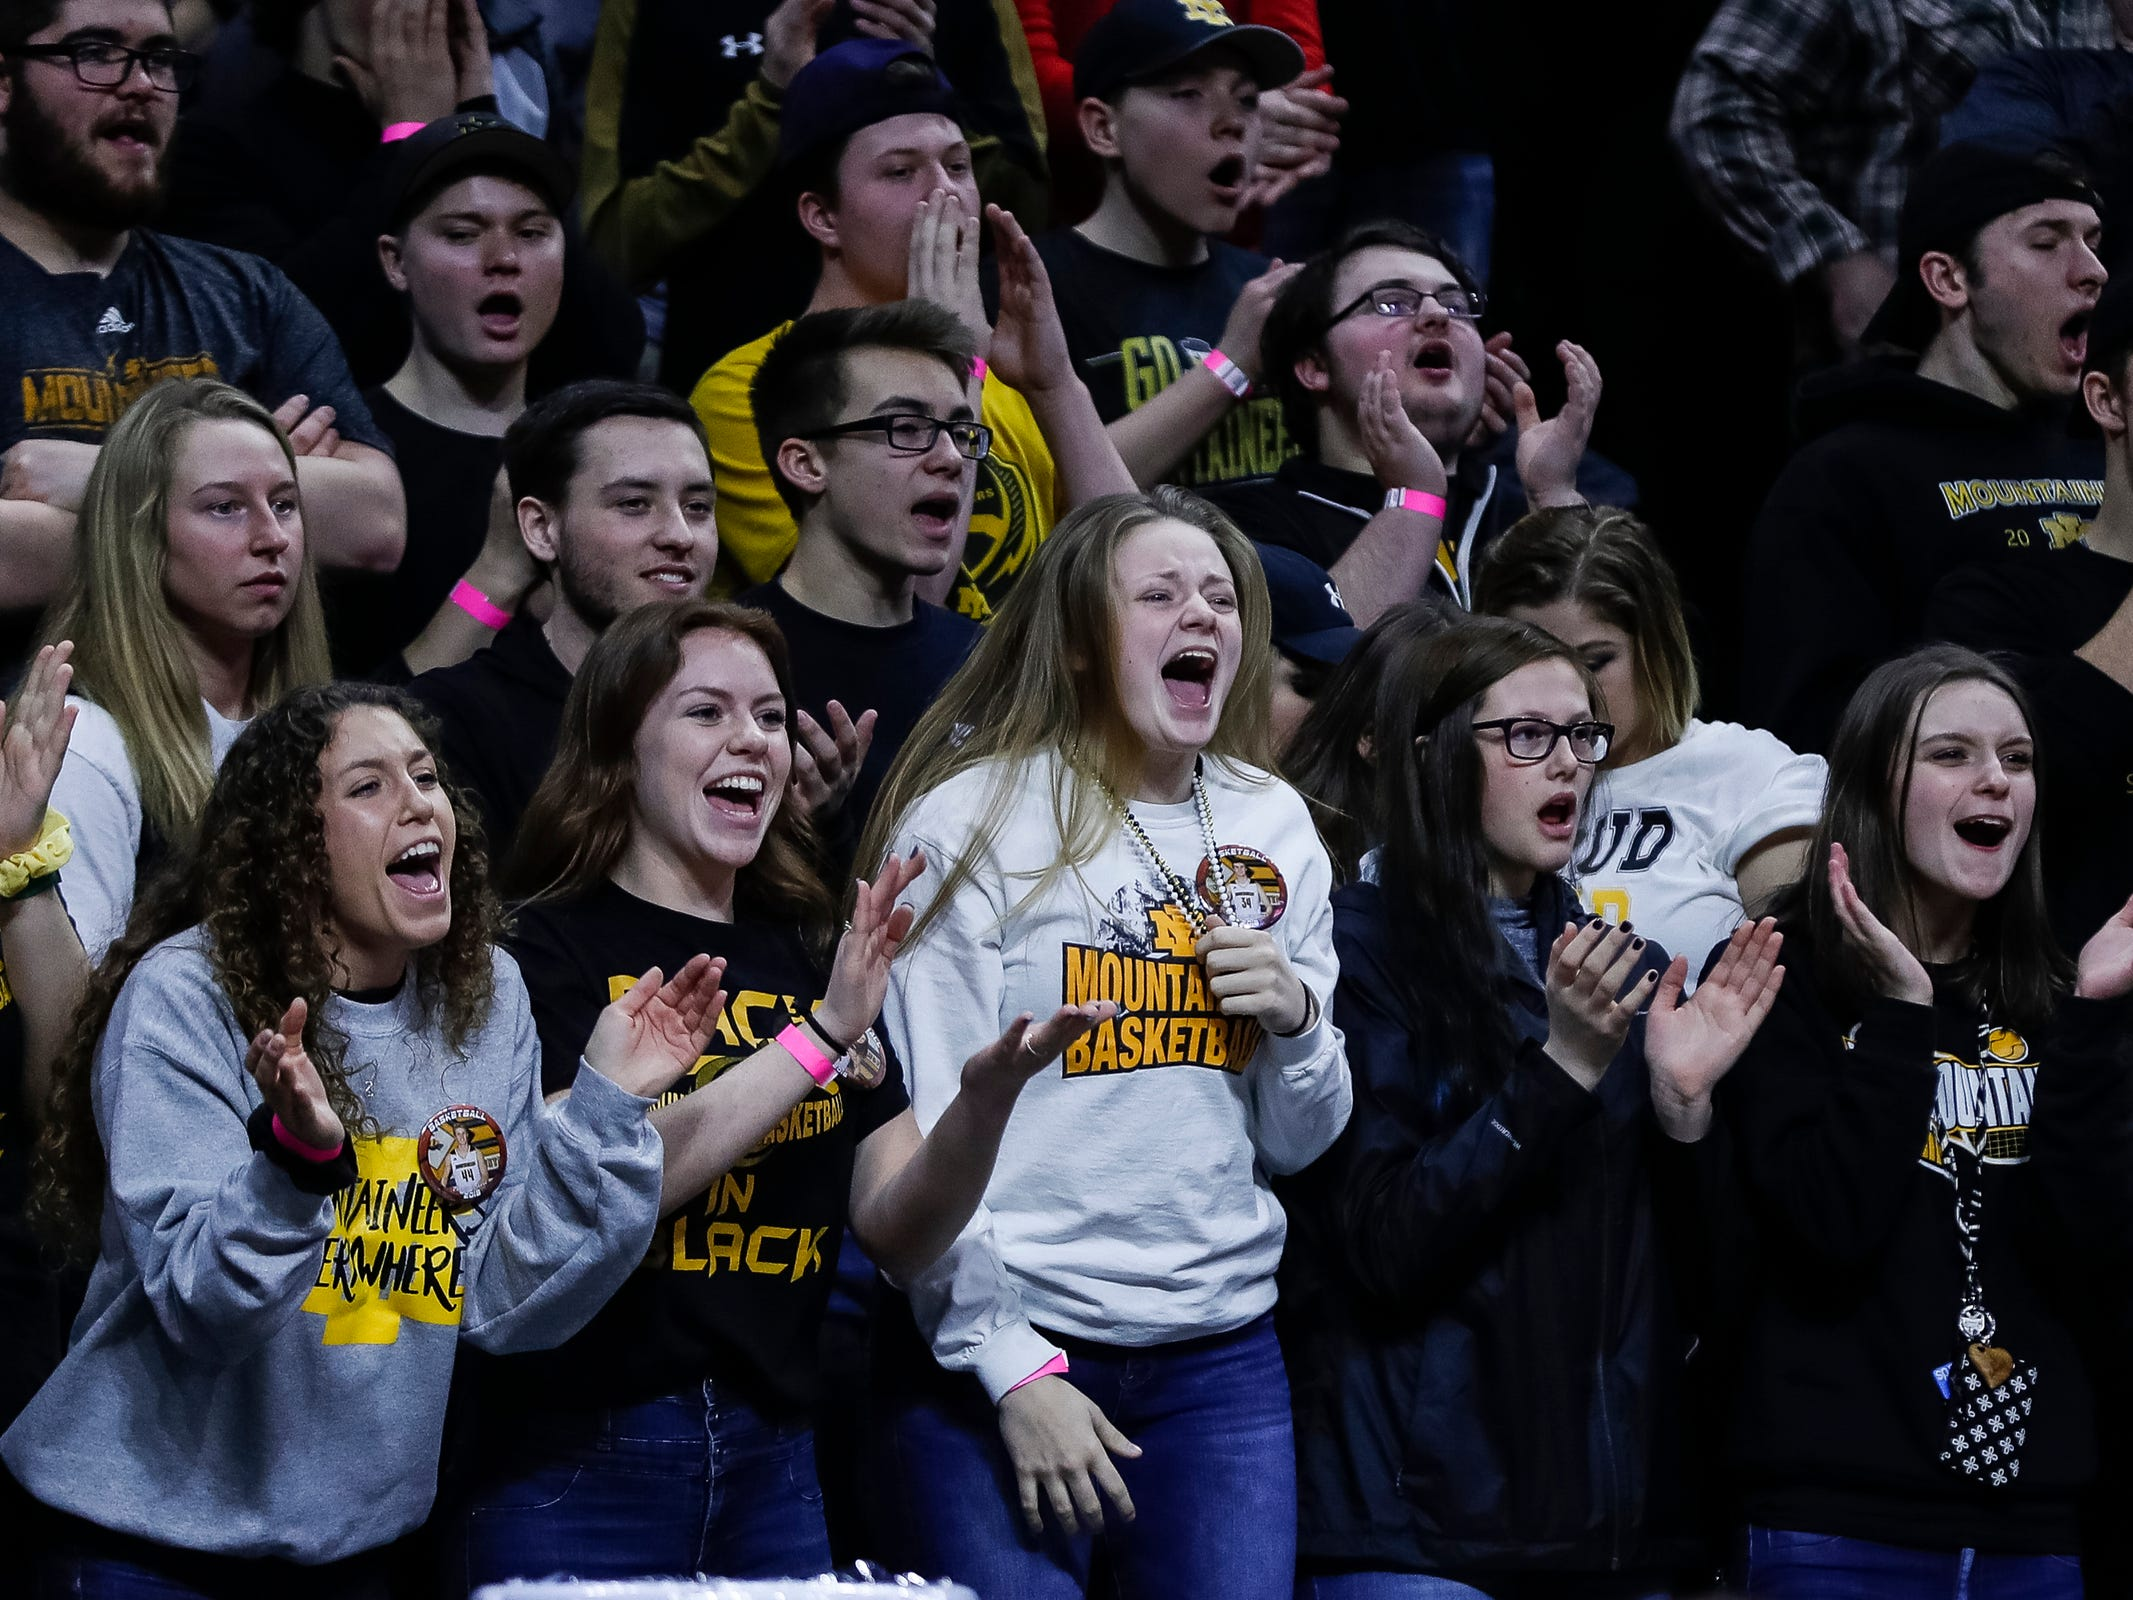 Iron Mountain students cheer for the Mountaineers during the first half of MHSAA Division 3 semifinal against Detroit Edison at the Breslin Center in East Lansing, Thursday, March 14, 2019.